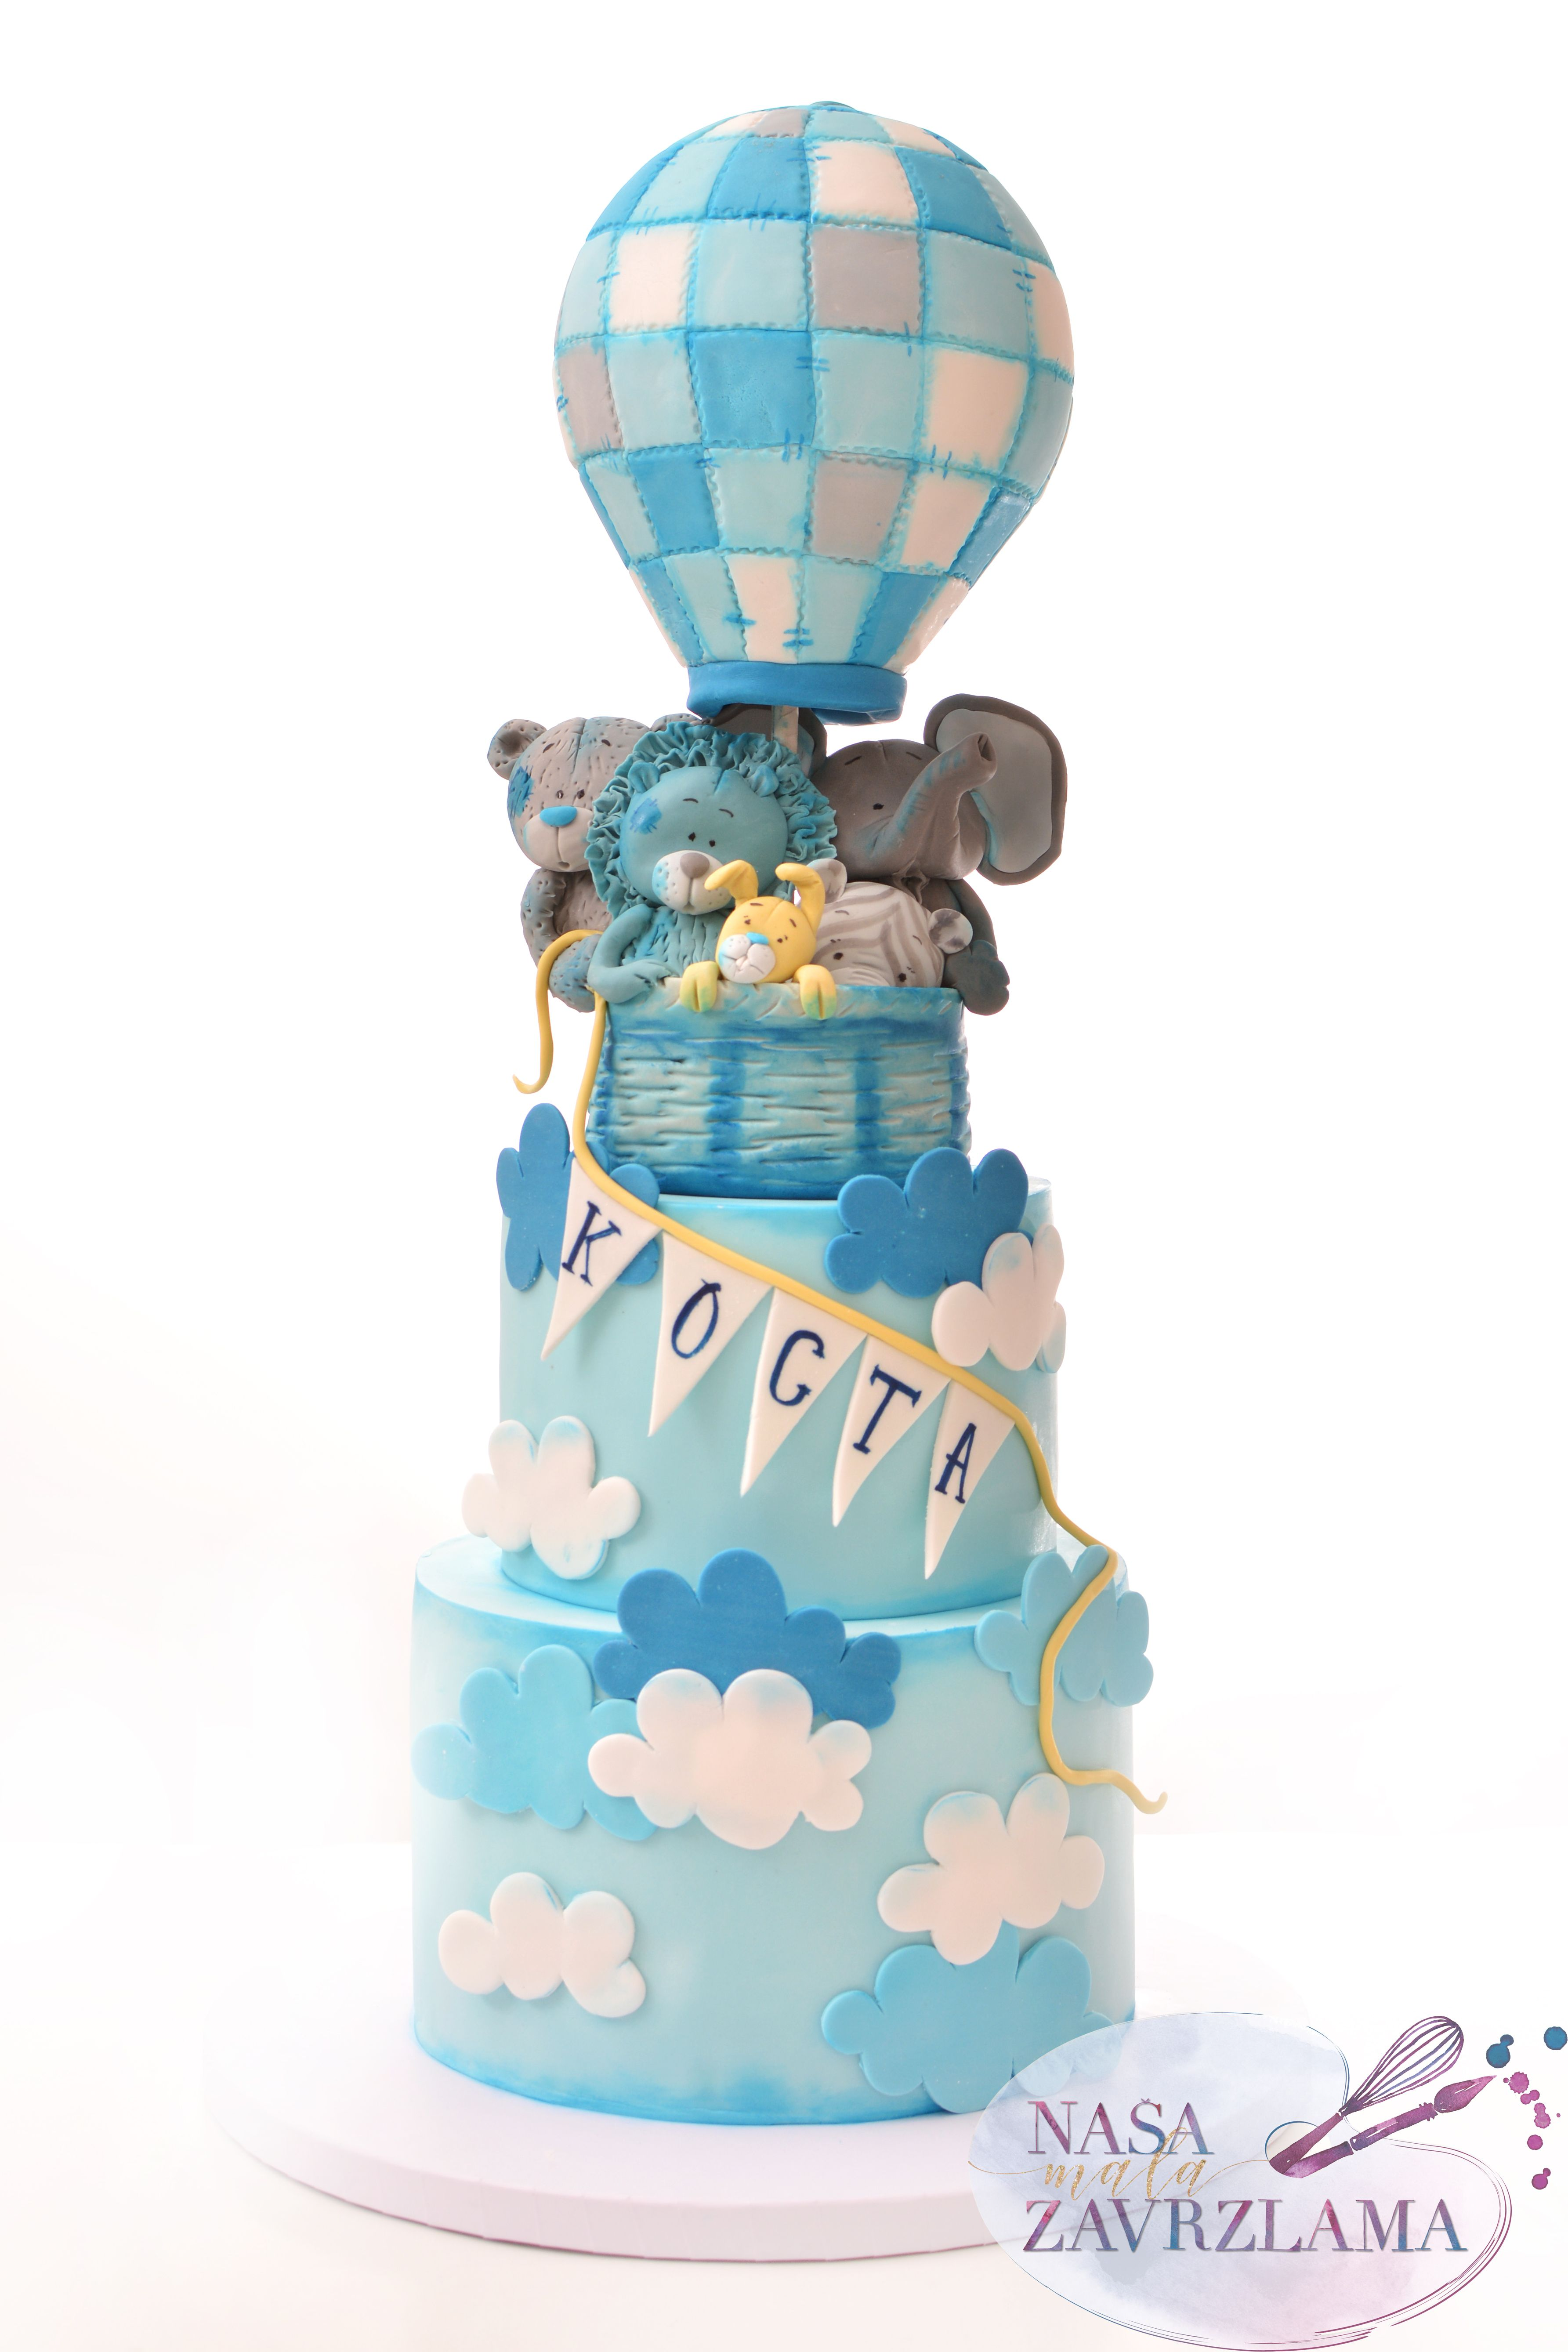 Pin by Cheryl Johnson on Decorated CakesCupcakesCookies